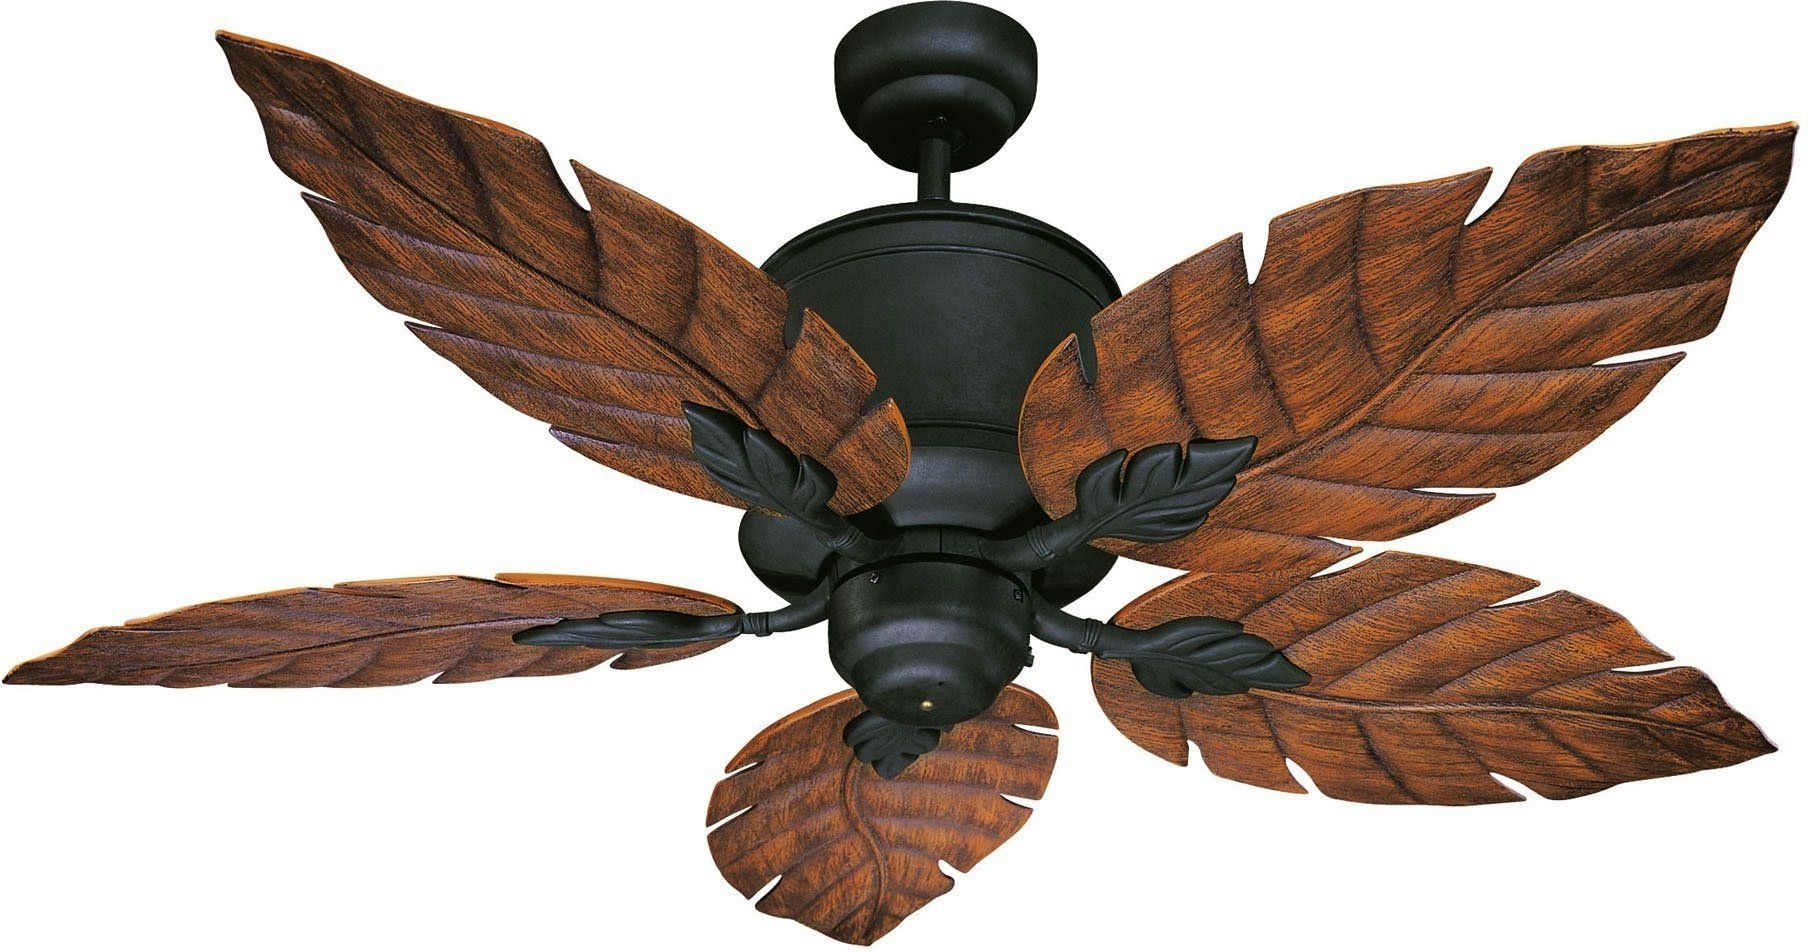 "Horseshoe Black Portico Portico 52"" Five Blade Outdoor Ceiling Fan For Best And Newest Outdoor Ceiling Fans With Leaf Blades (View 10 of 20)"